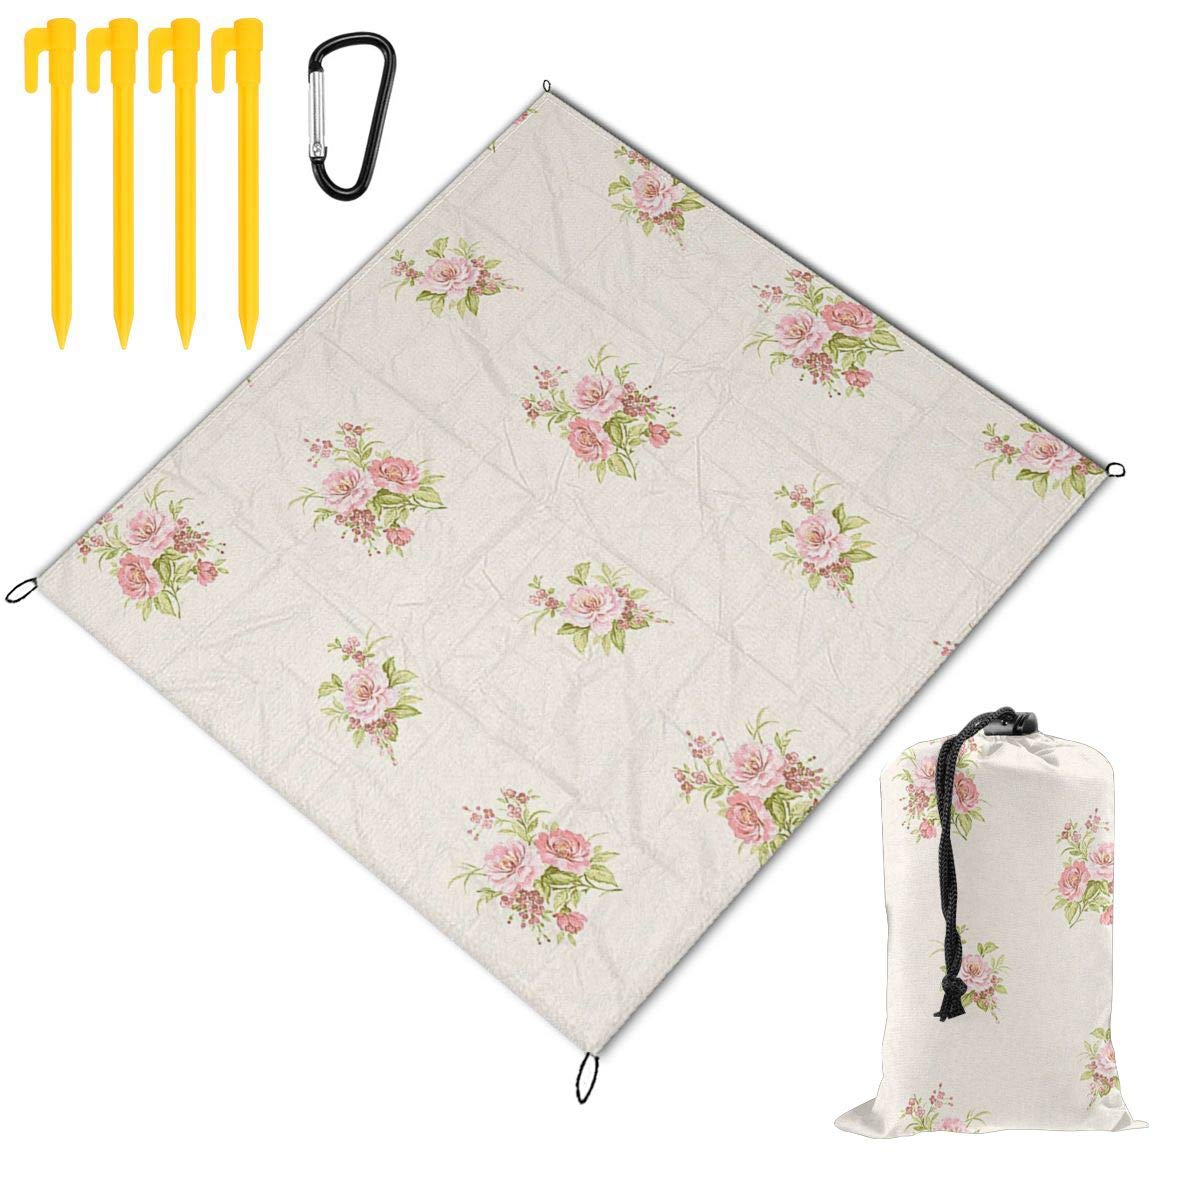 FunnyCustom Picnic Blanket Portable Waterproof Vintage Floral Picnic Mat for Beach Camping 67 x 57 Inch